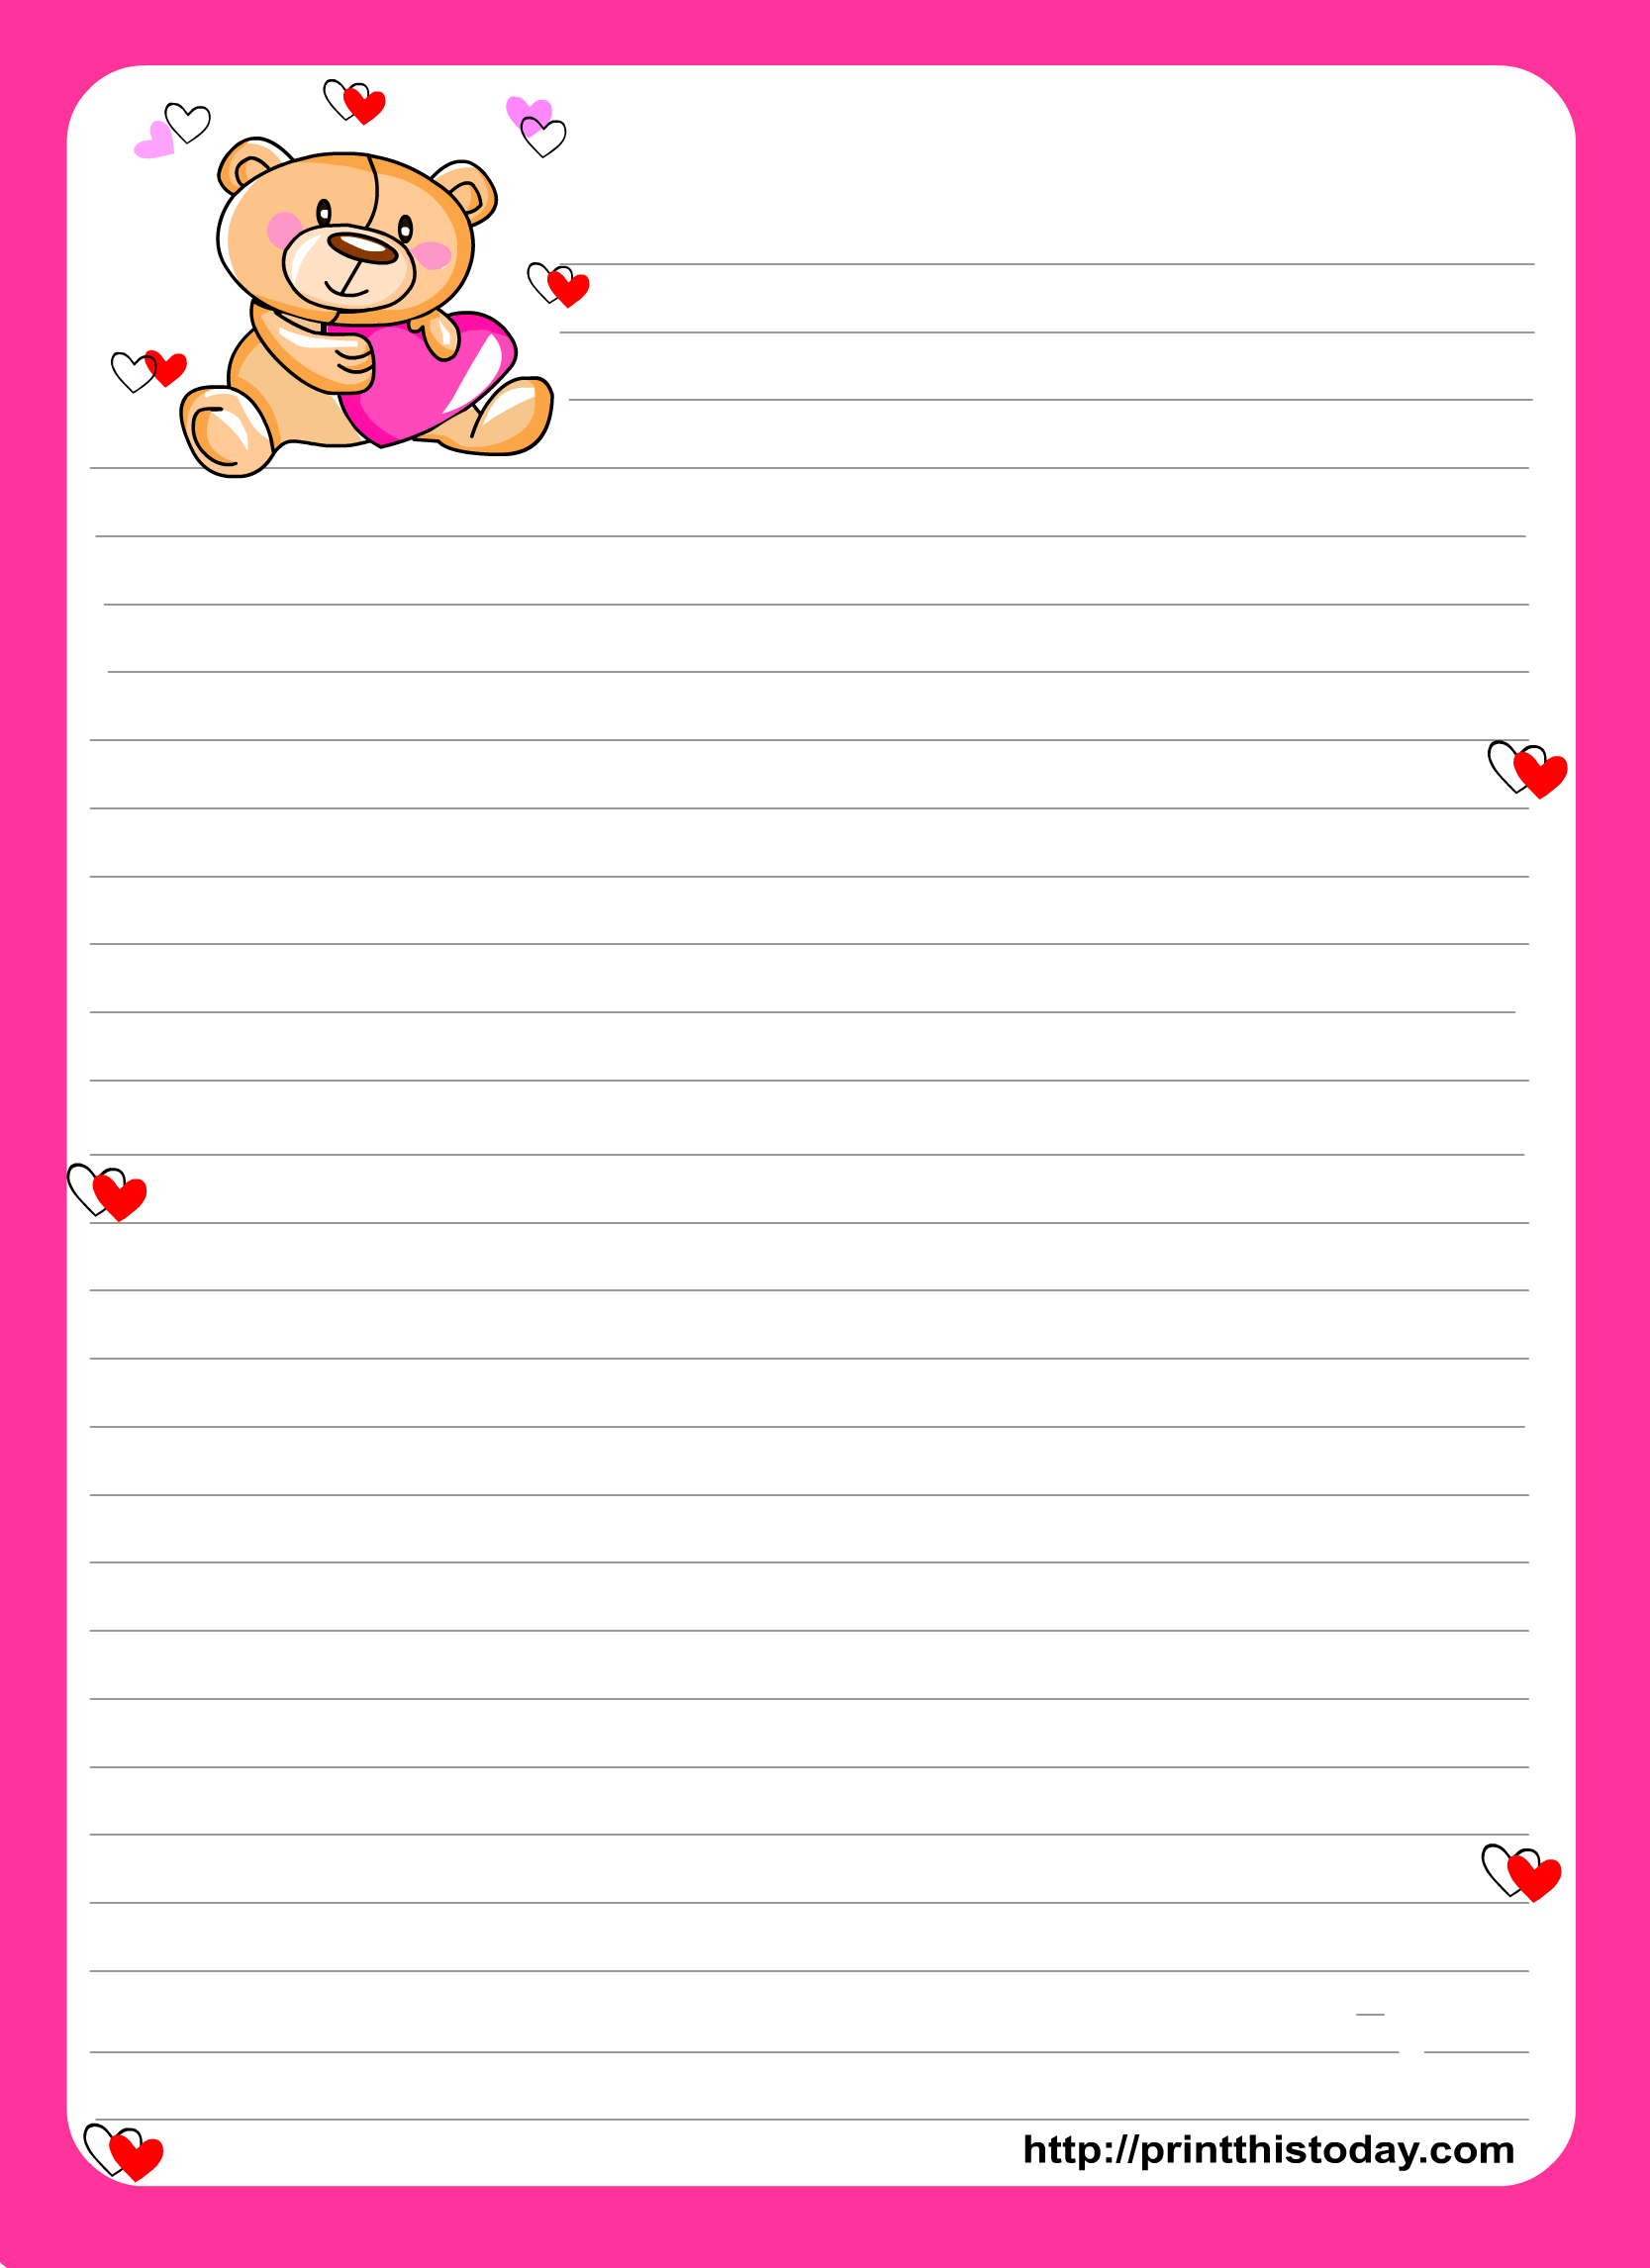 Printable Stationery Paper  Google Search  Stationery